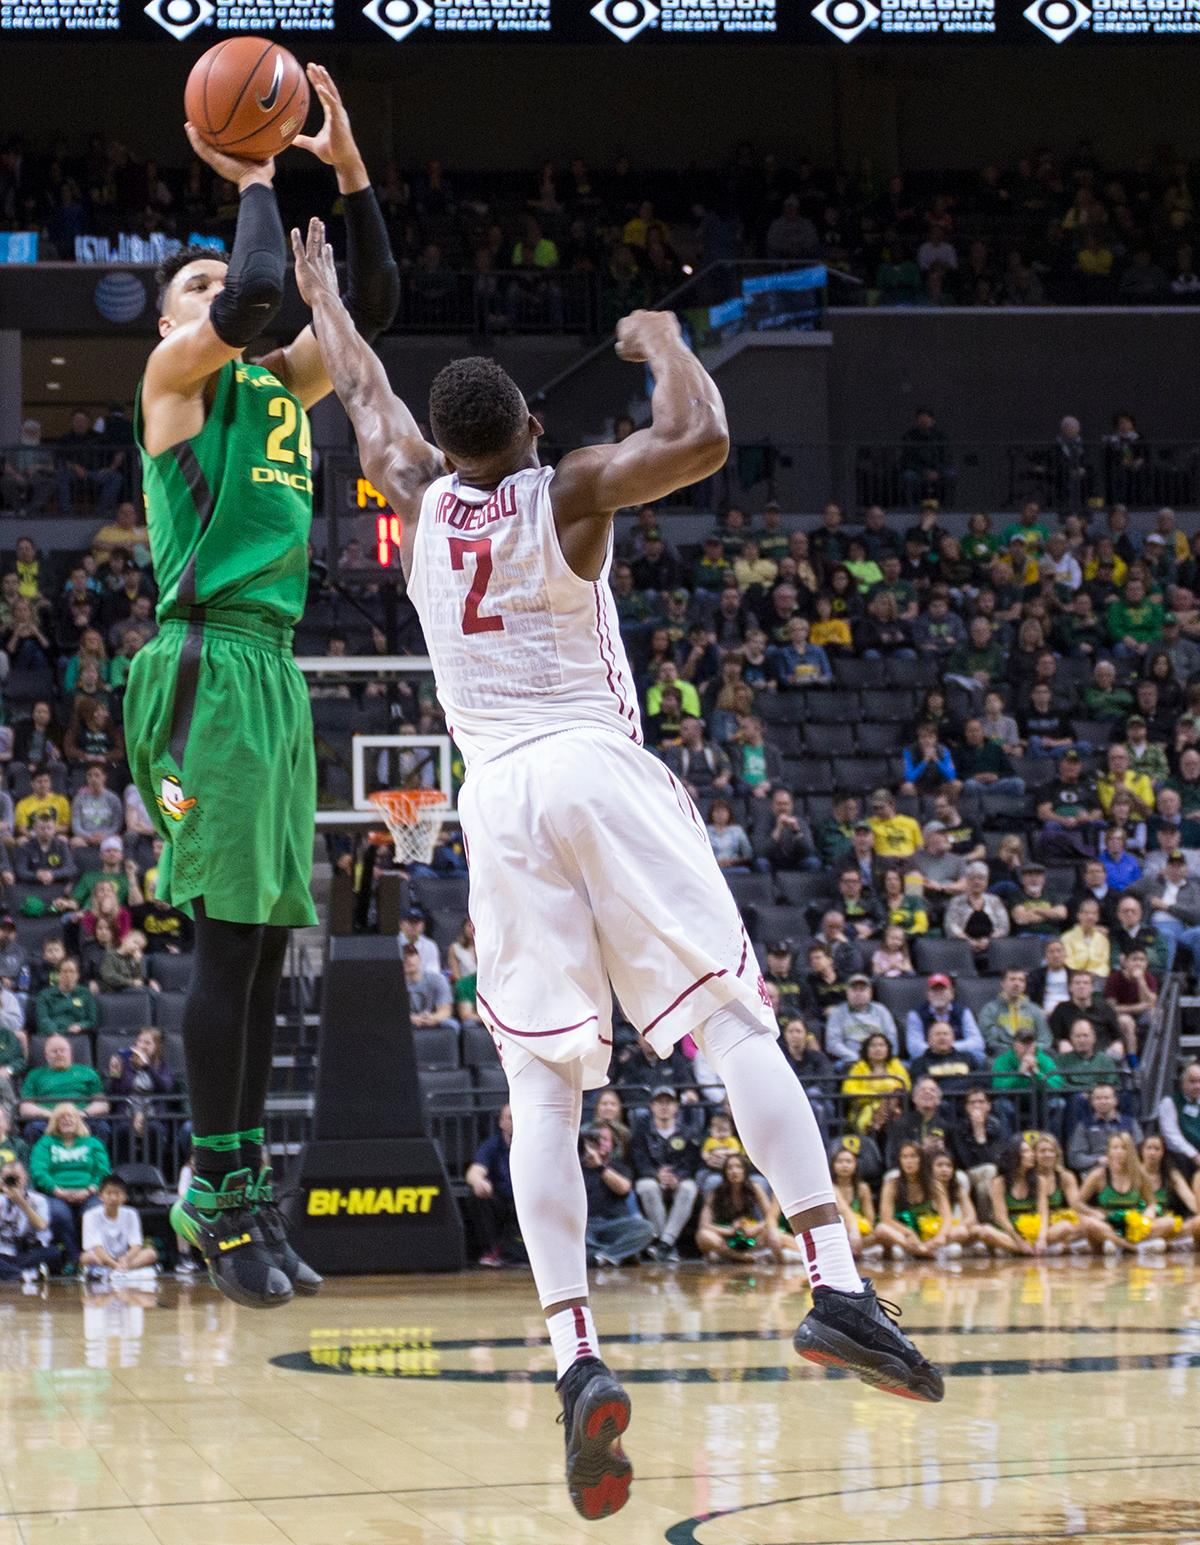 Oregon Ducks' Dillon Brooks (#24) attempts a three point shot while being defended by Washington State Cougars' Ike Iroegbu (#2). The Ducks beat the Cougars 76-62. Kianna Cabuco, Oregon News Lab